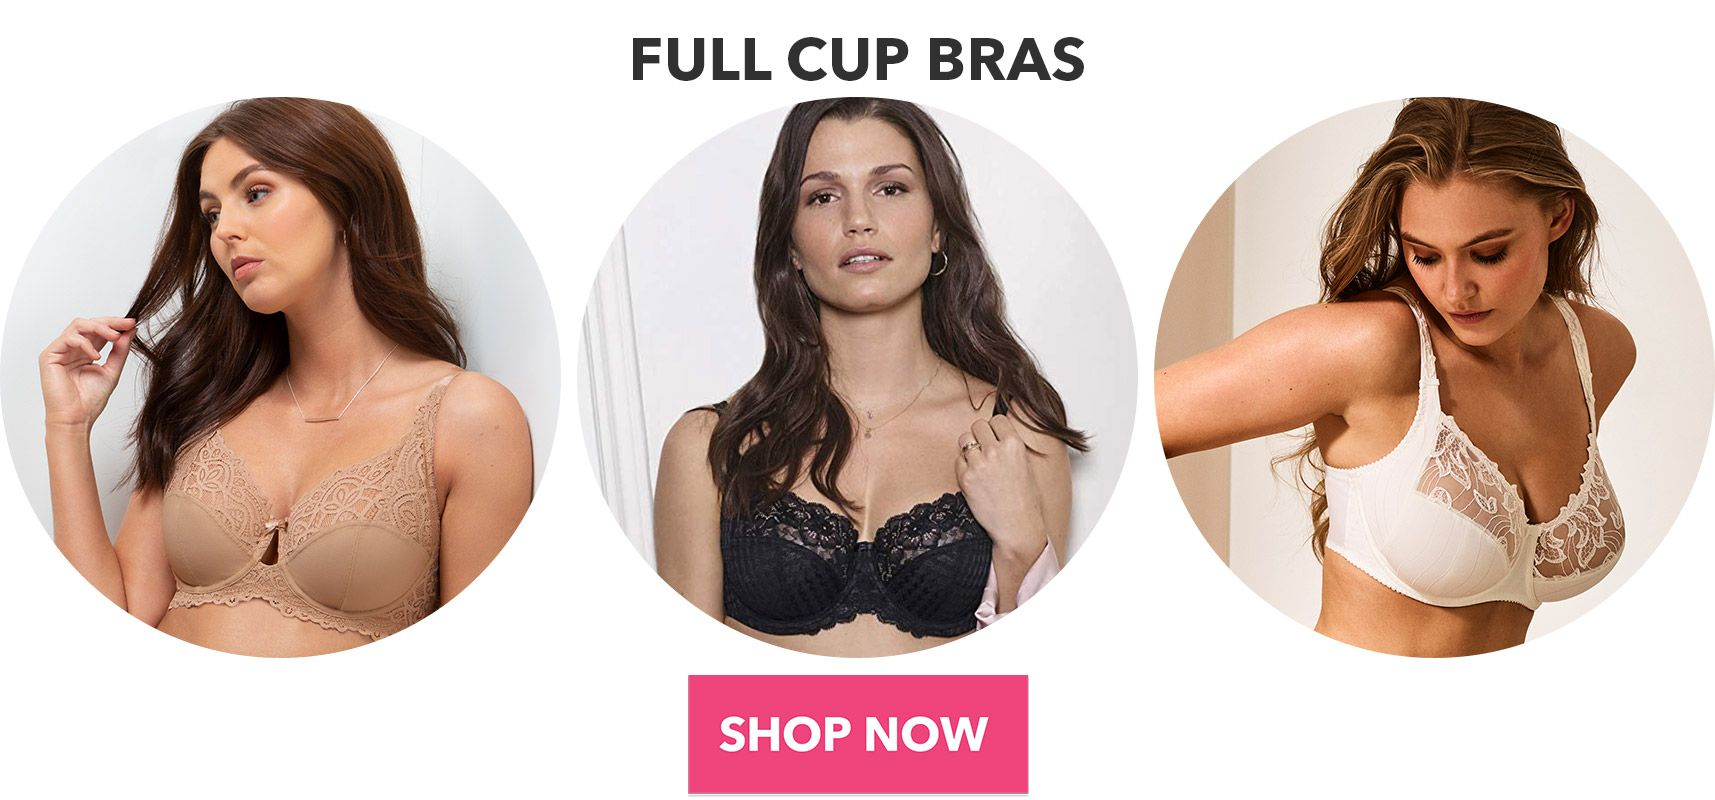 full cup bras shop now